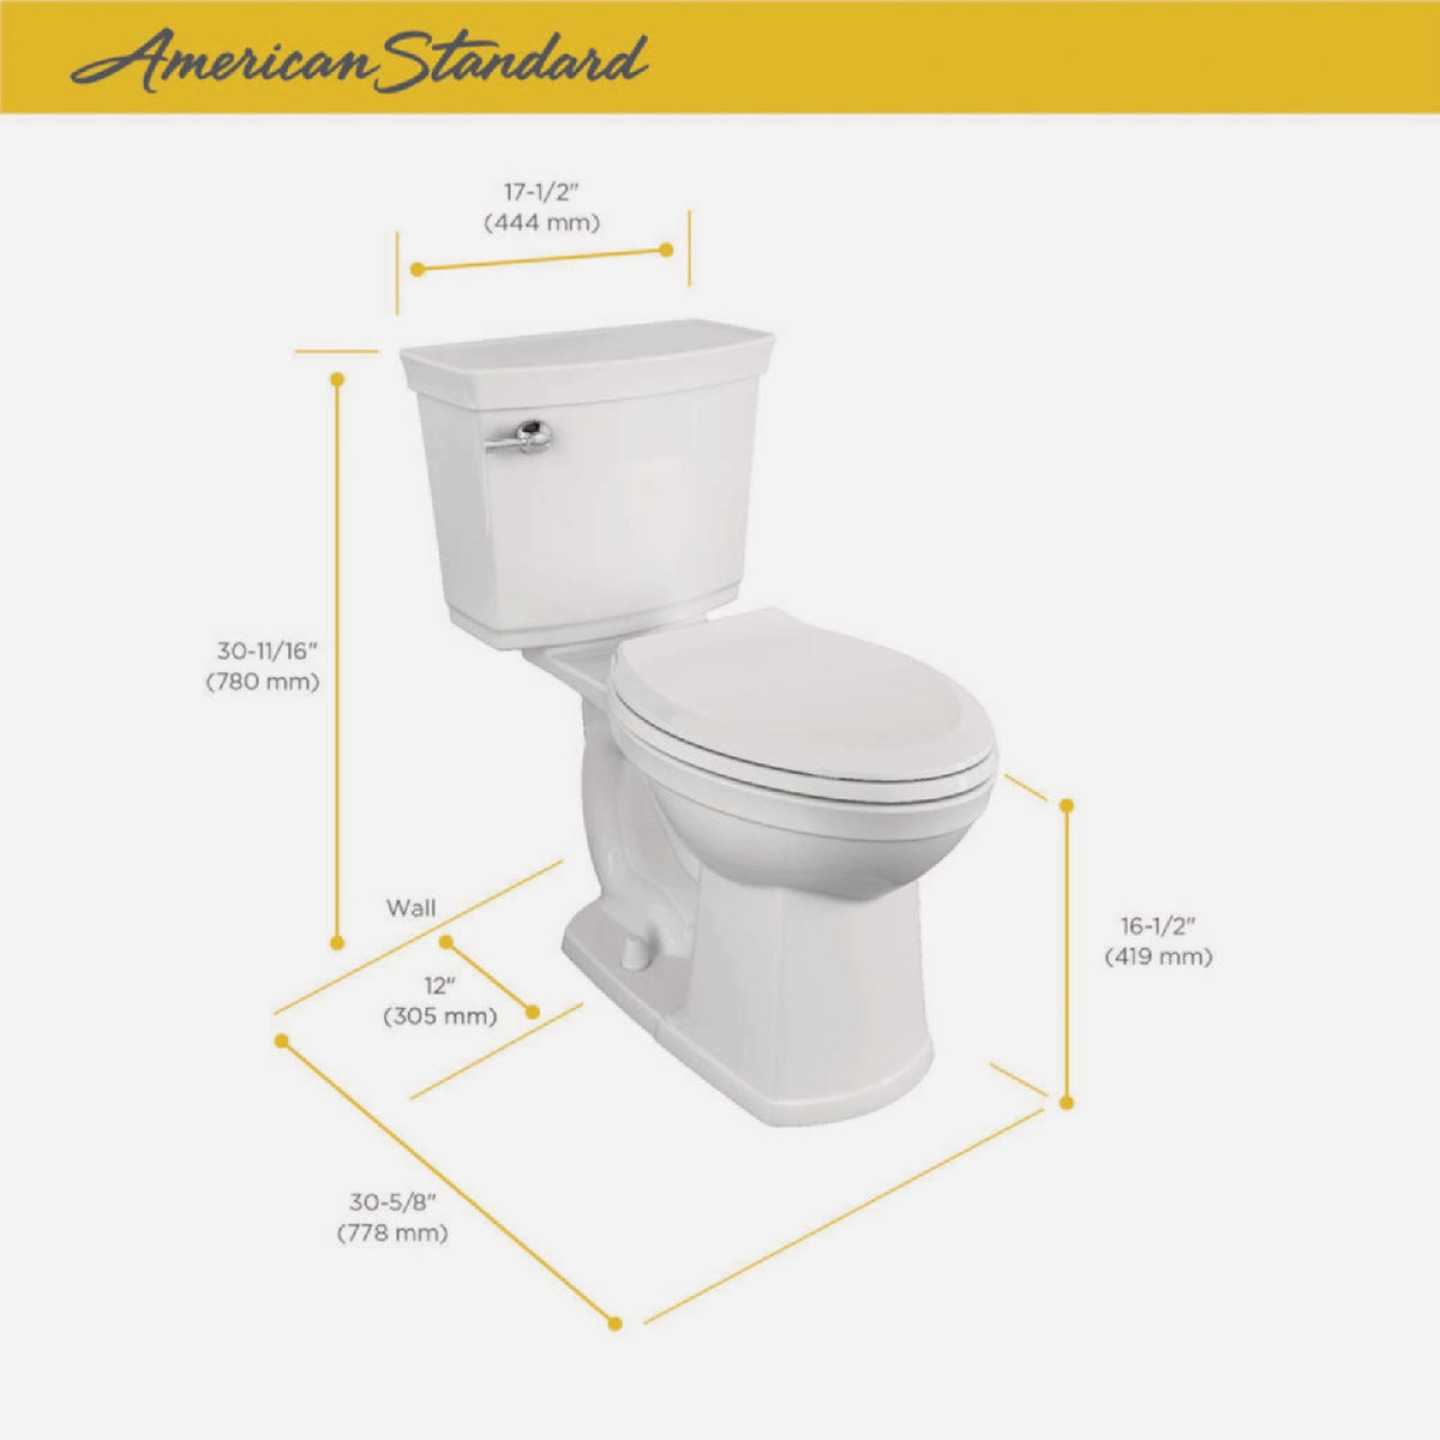 American Standard Astute VorMax Right Height White Elongated Bowl 1.28 GPF Complete Toilet Image 2